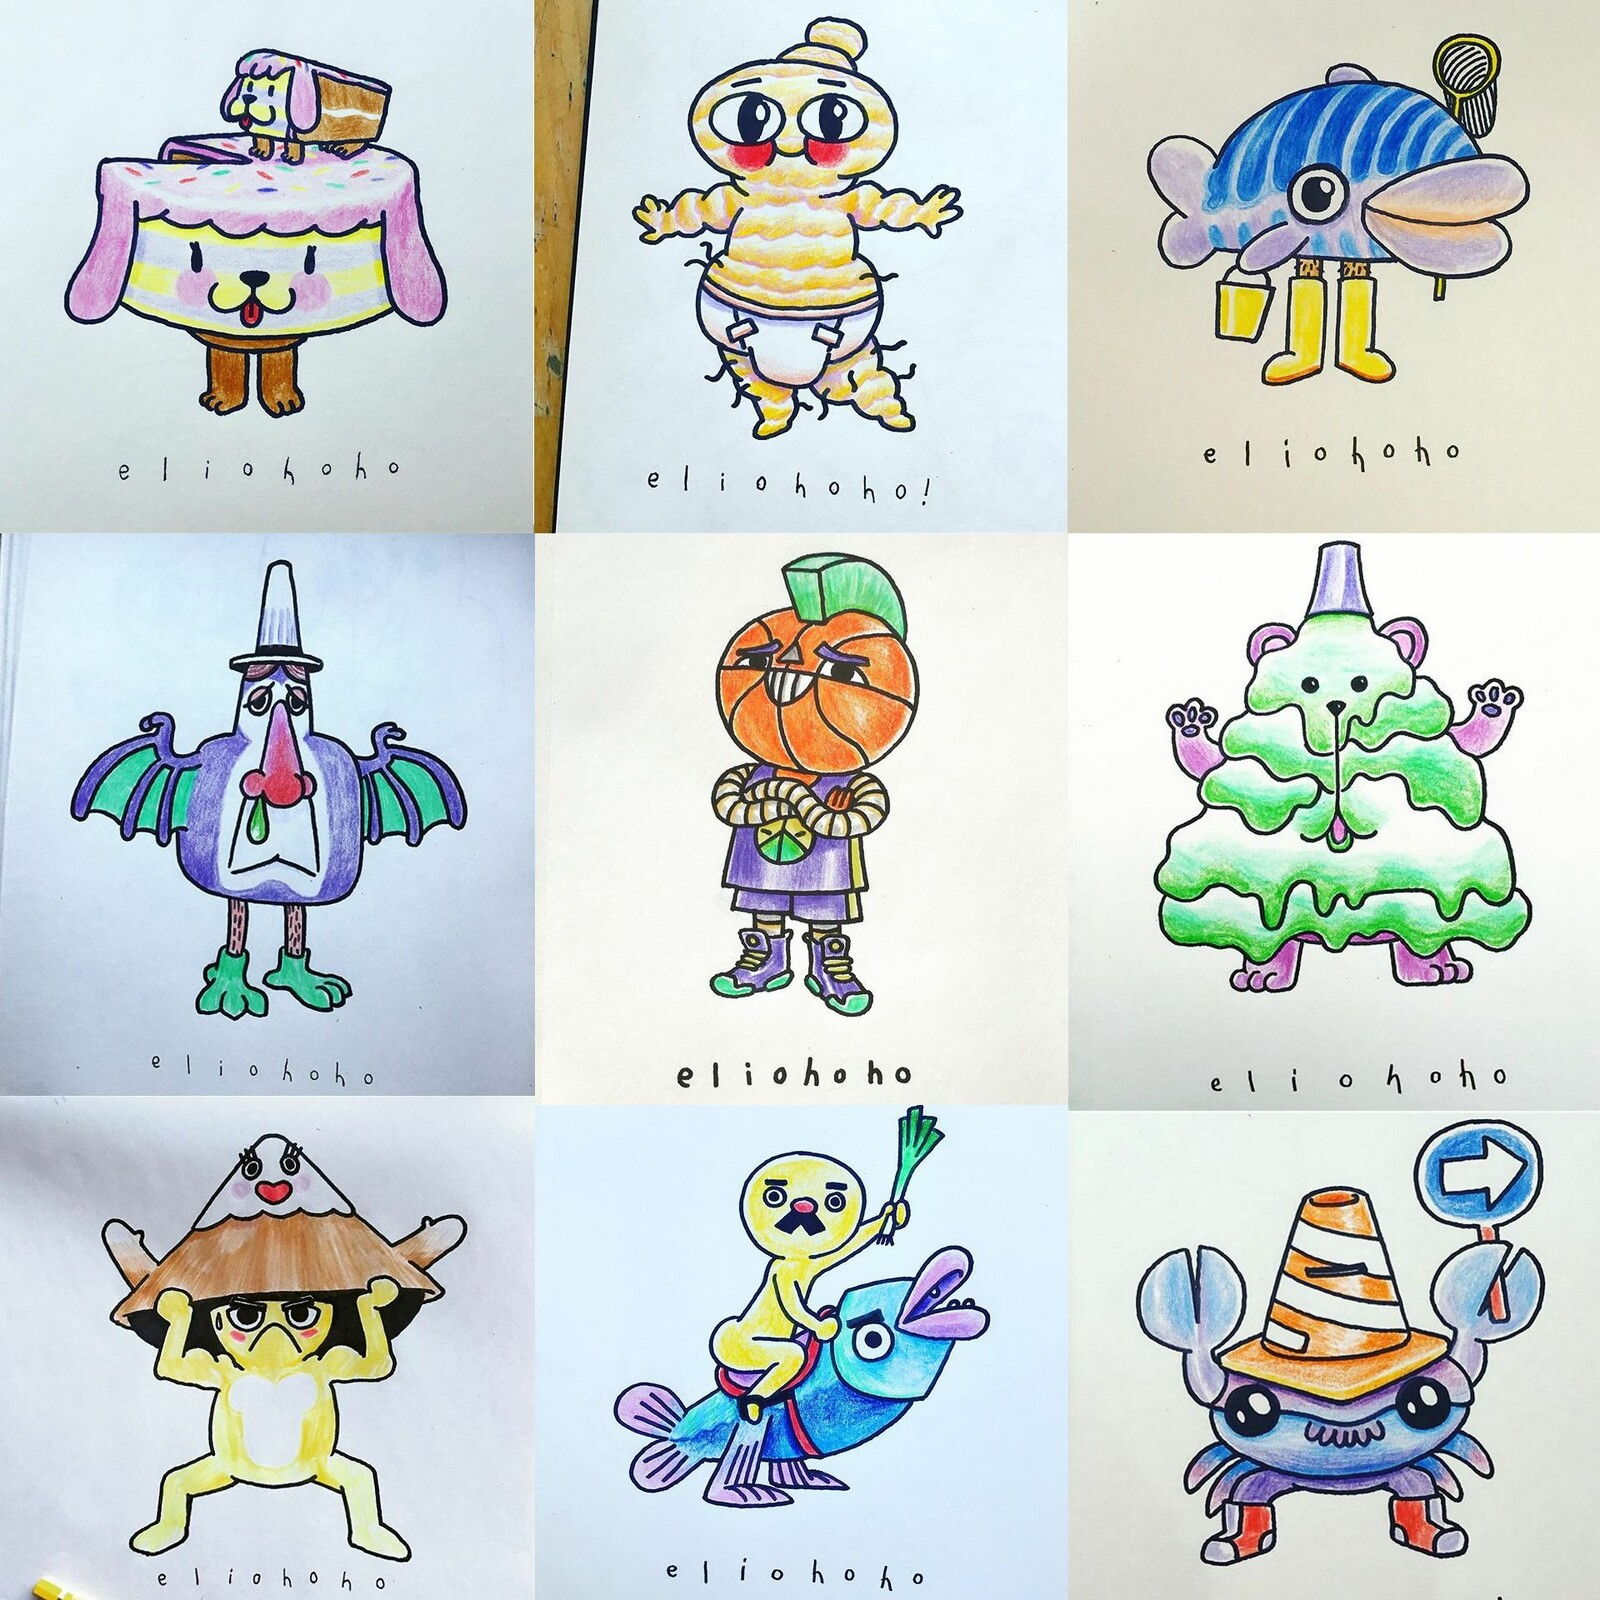 Japanese Mascots from my 2019 Inktober